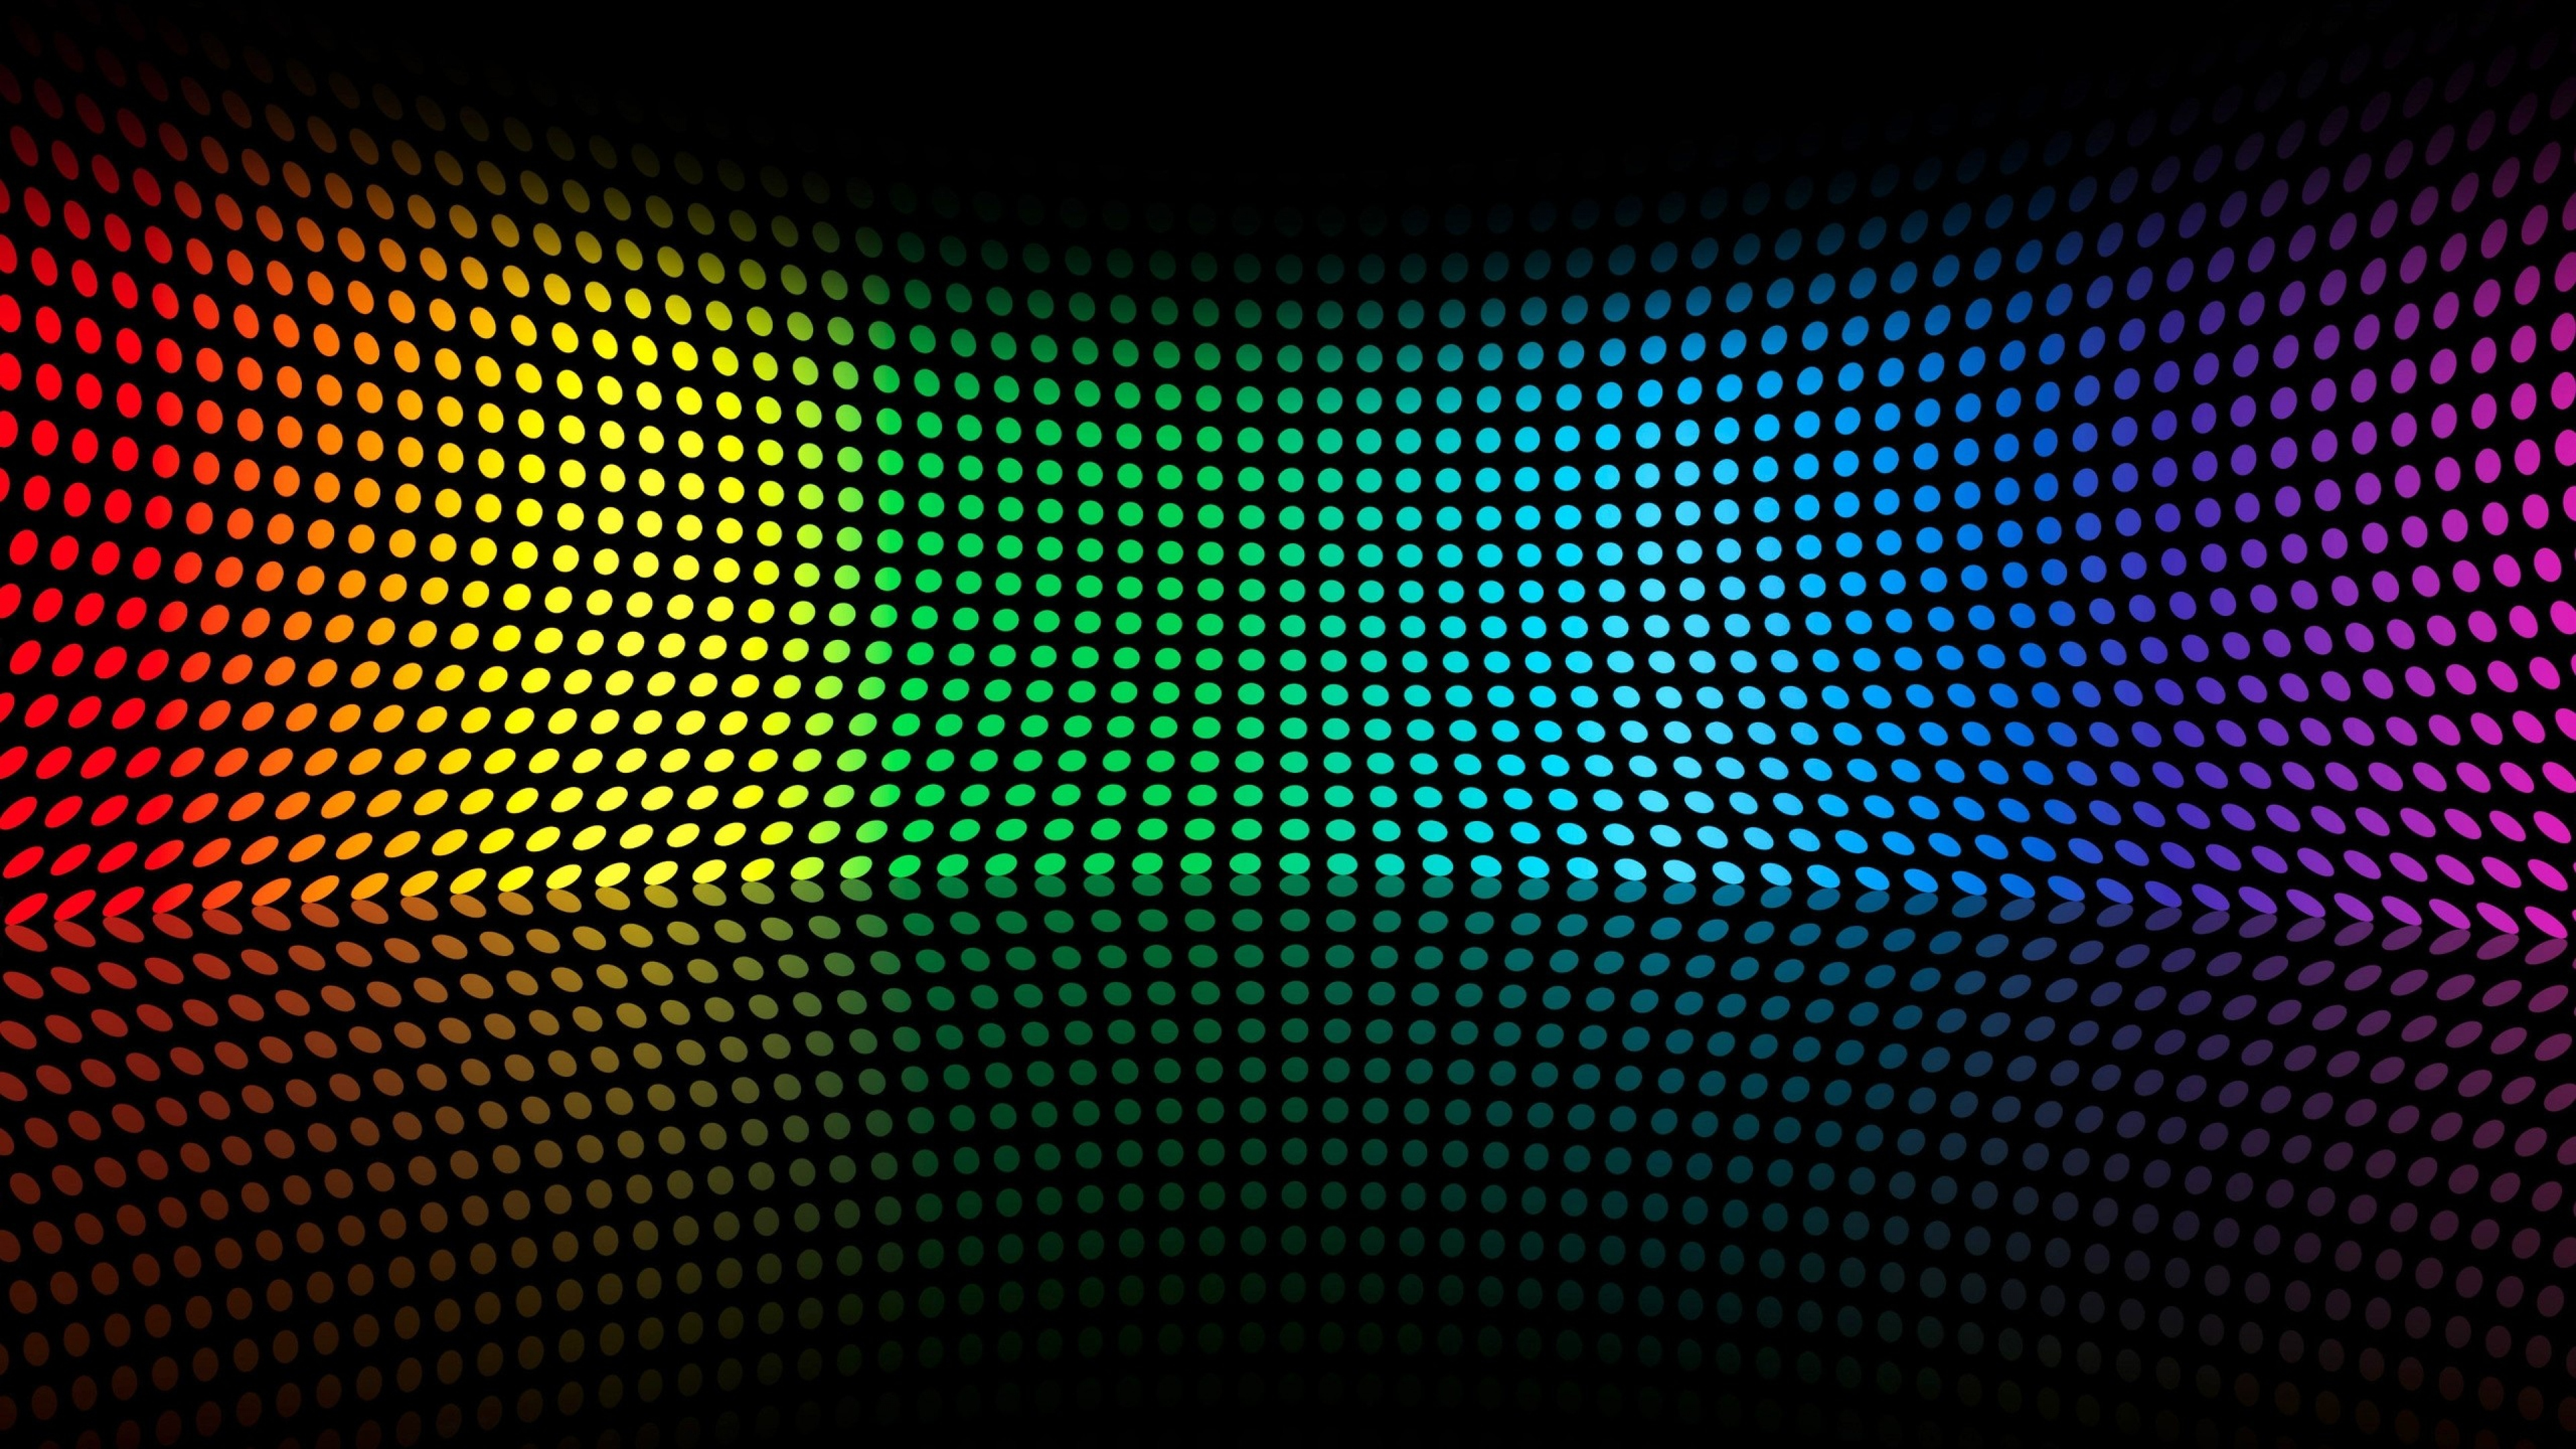 110 perfect hd wallpapers for your amoled 2k displays for 1234 get on the dance floor song download free